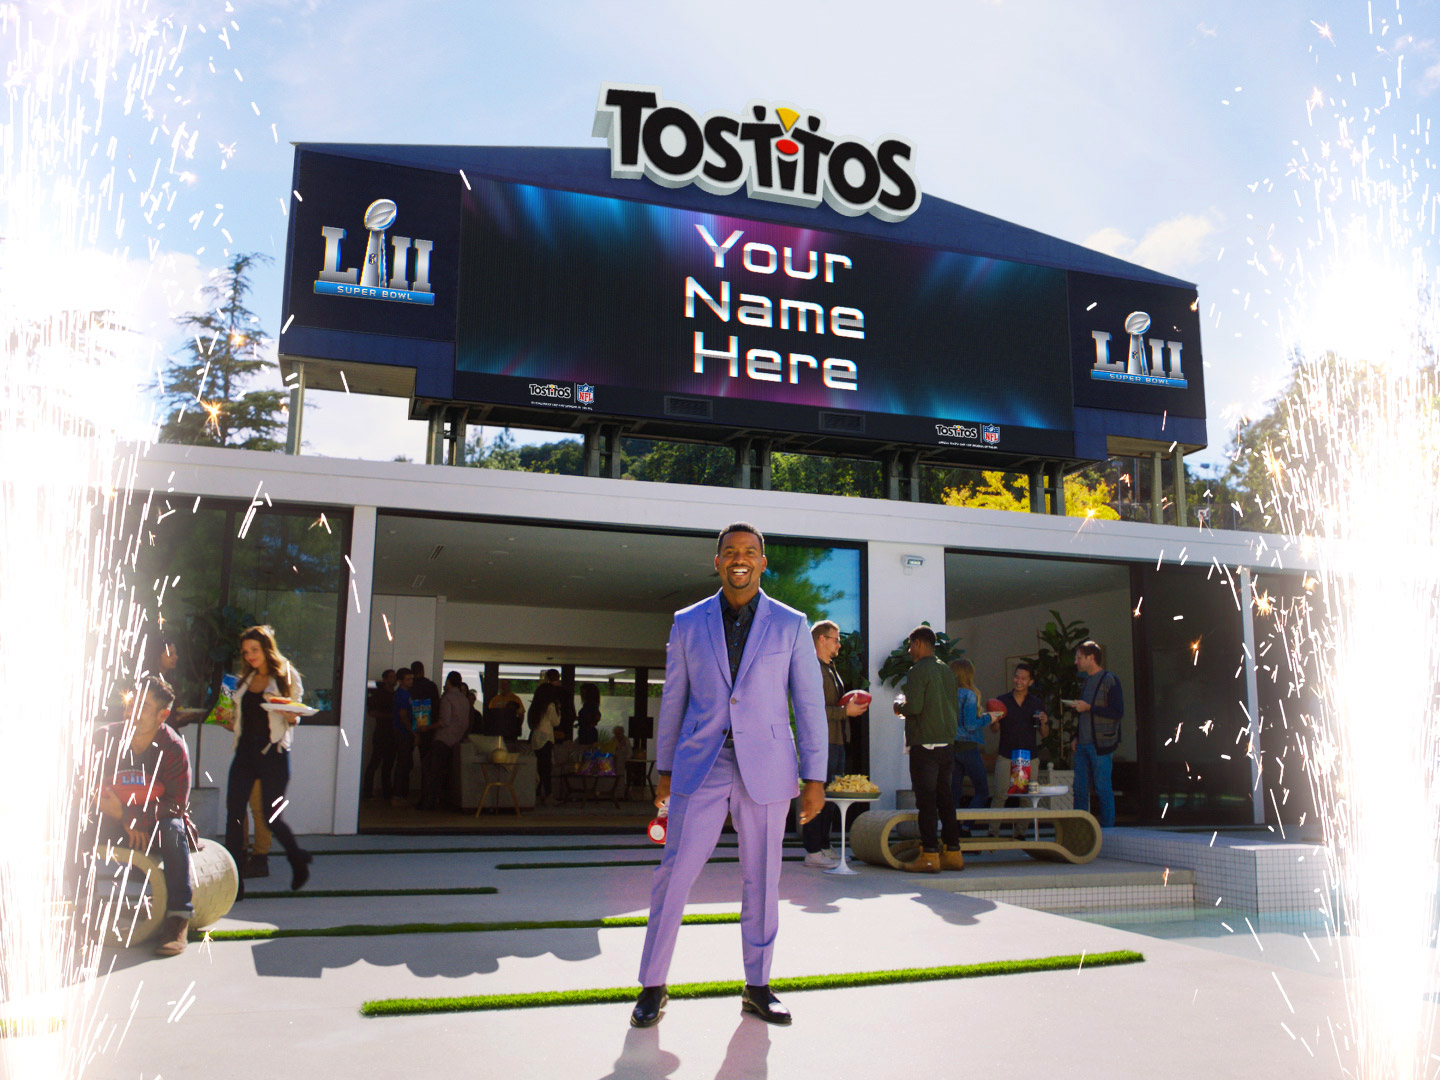 tostitos alfonso super bowl